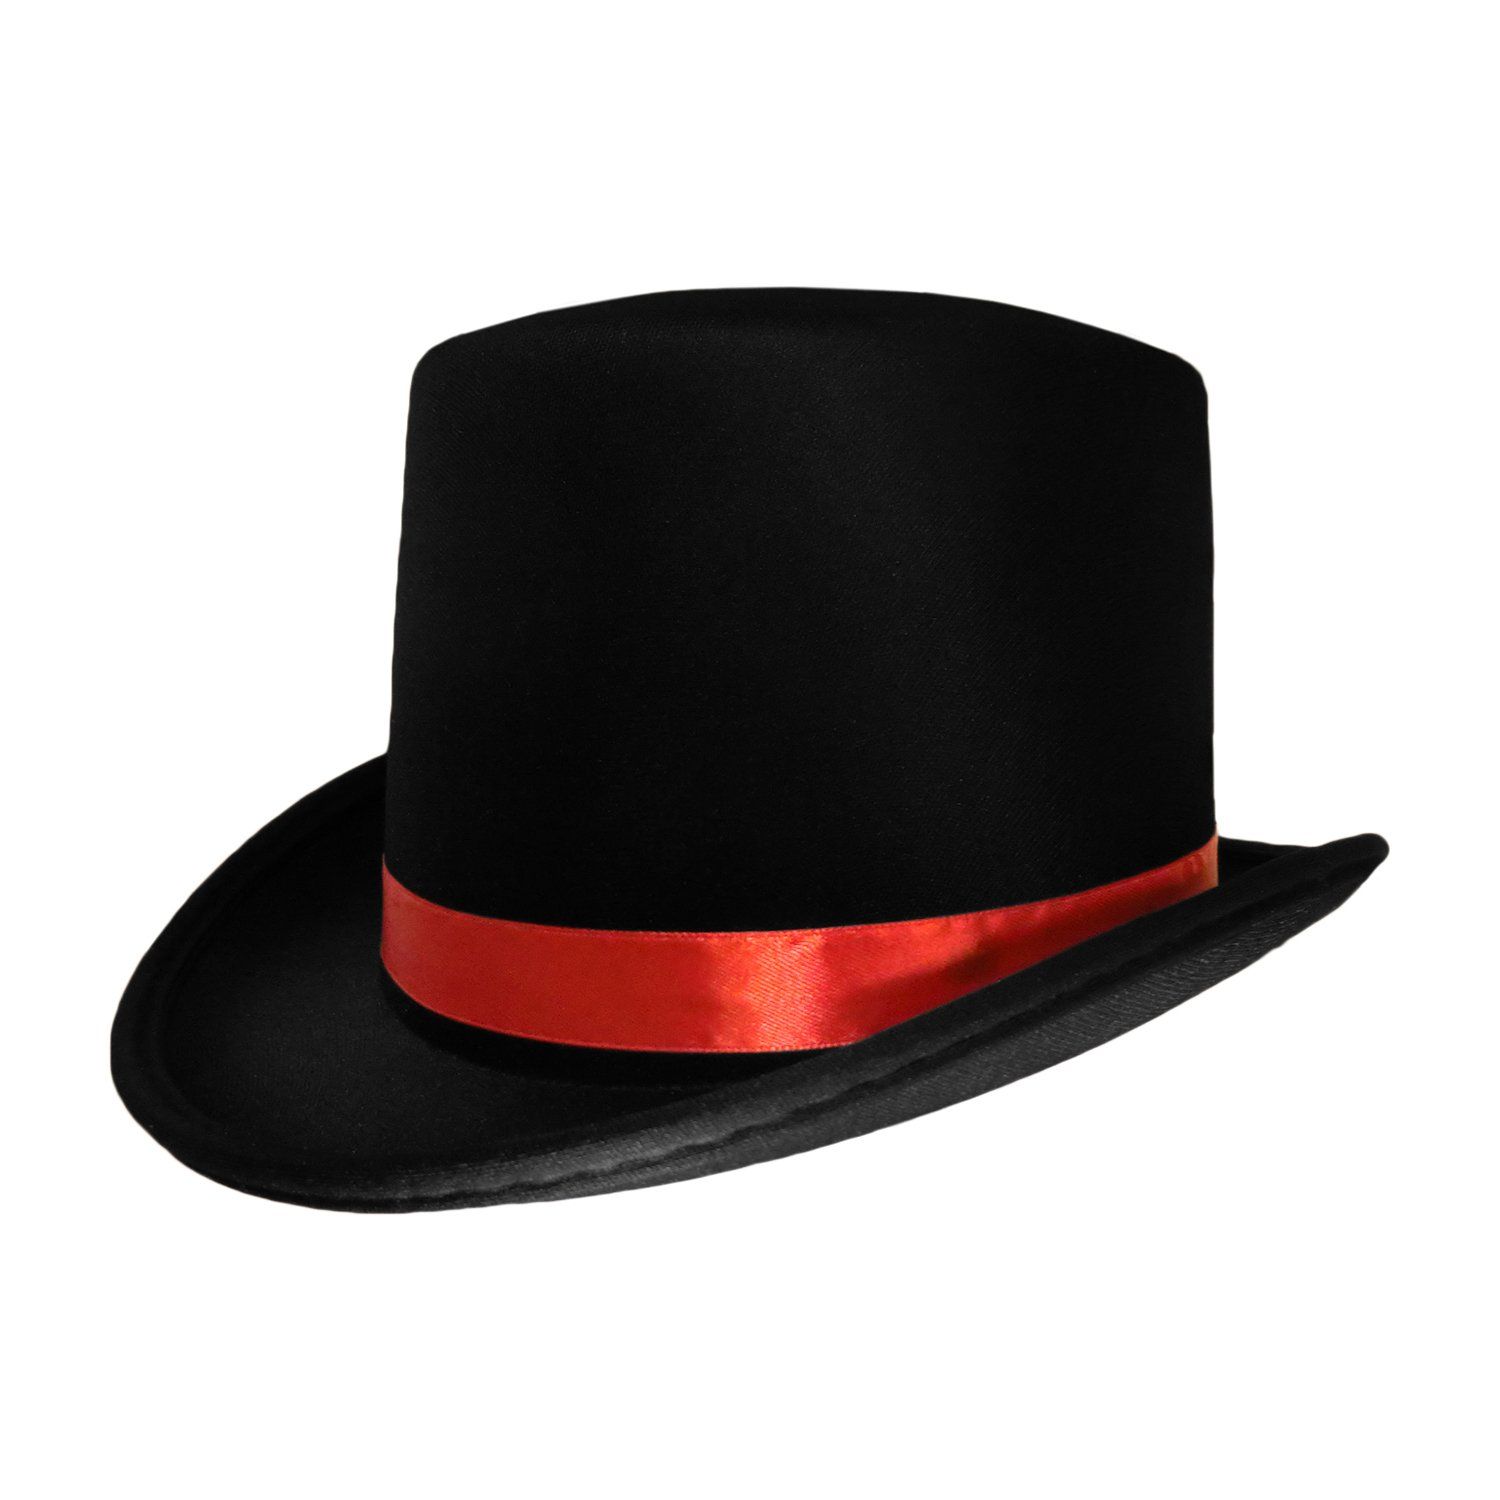 146624c5c24 Amazon.com  Black Top Hat with Red Band Caroler Snowman Ringmaster Mad  Hatter Baron Costume  Clothing